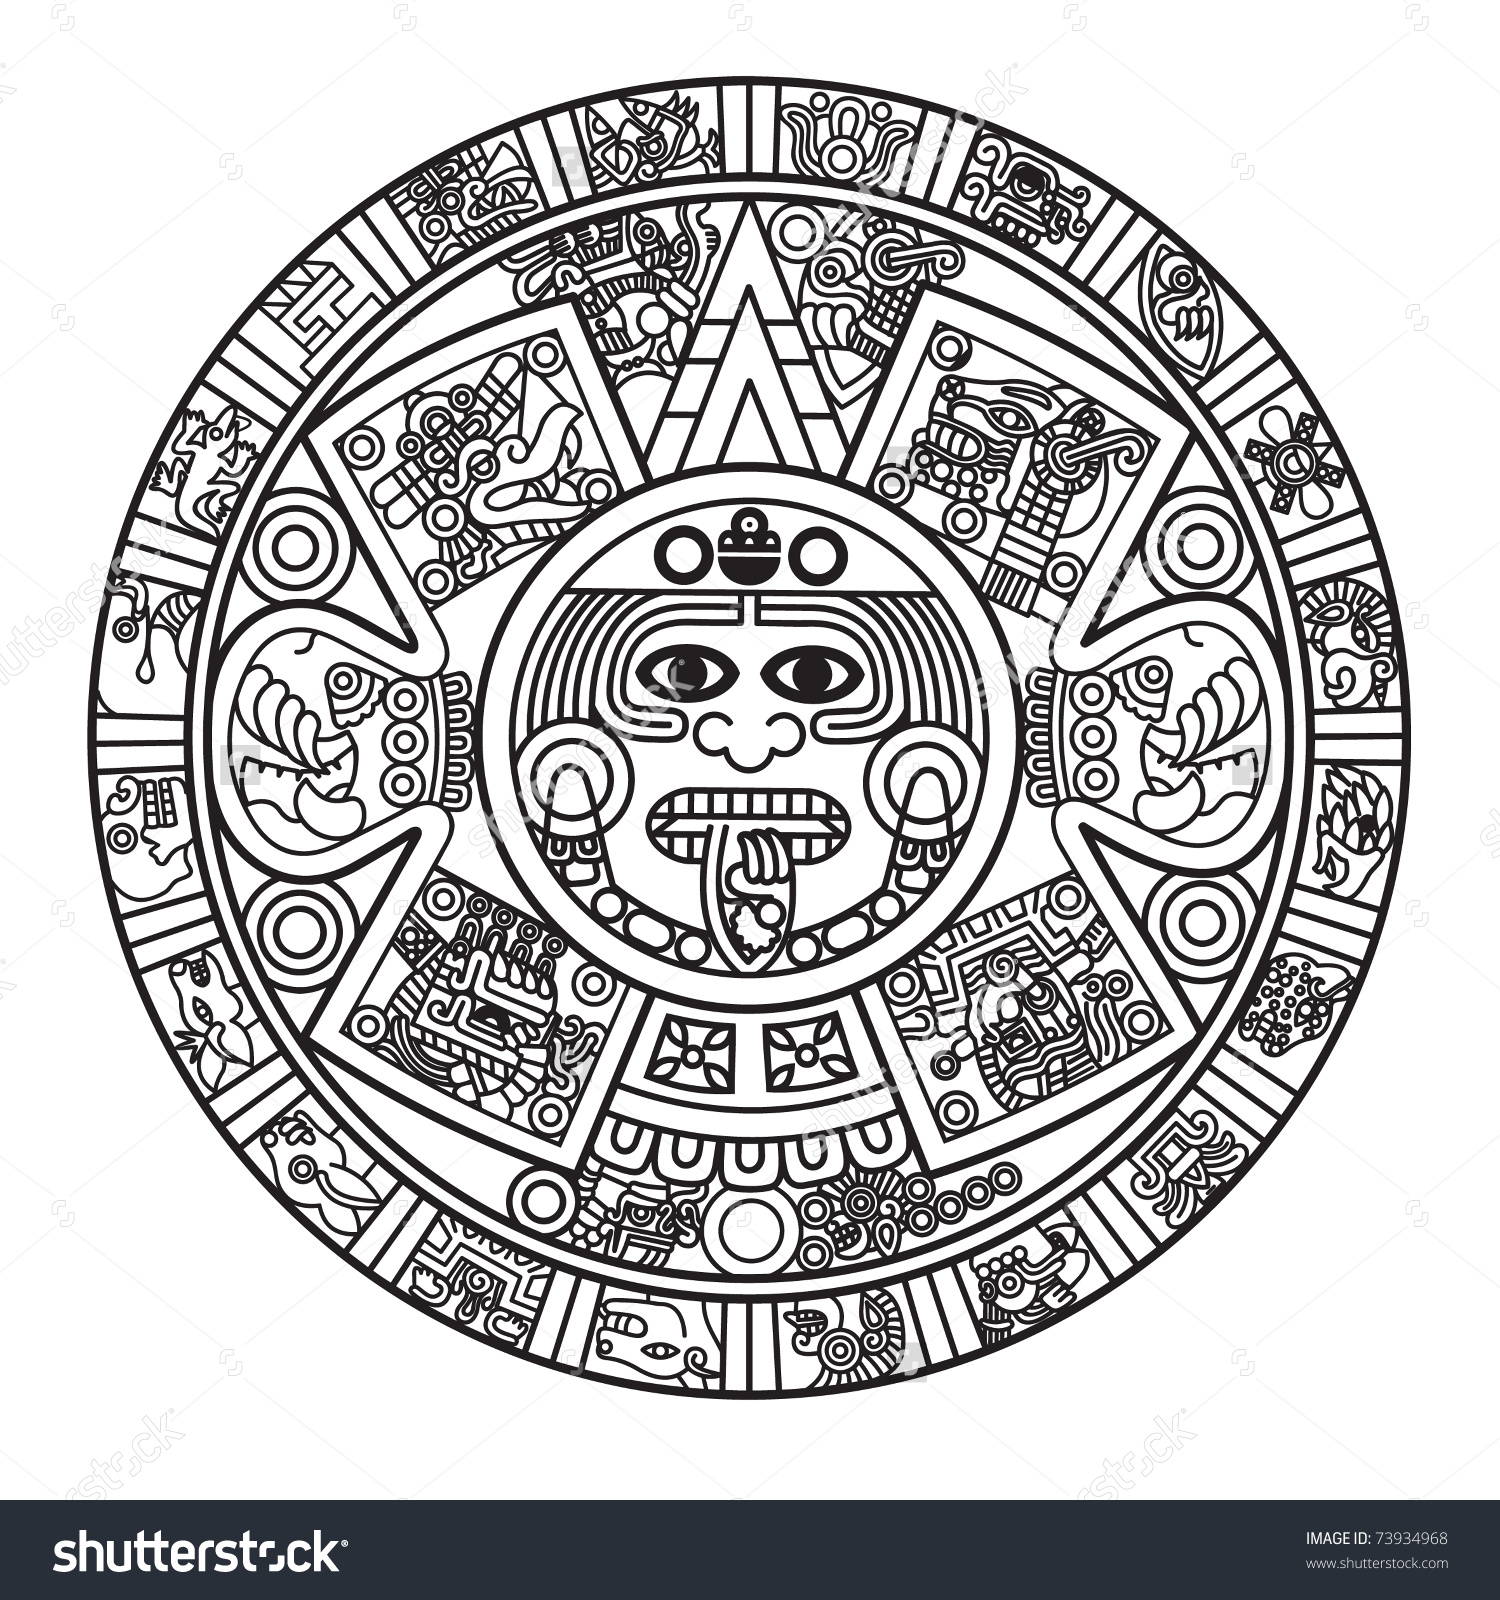 Images of Aztec | 1500x1600